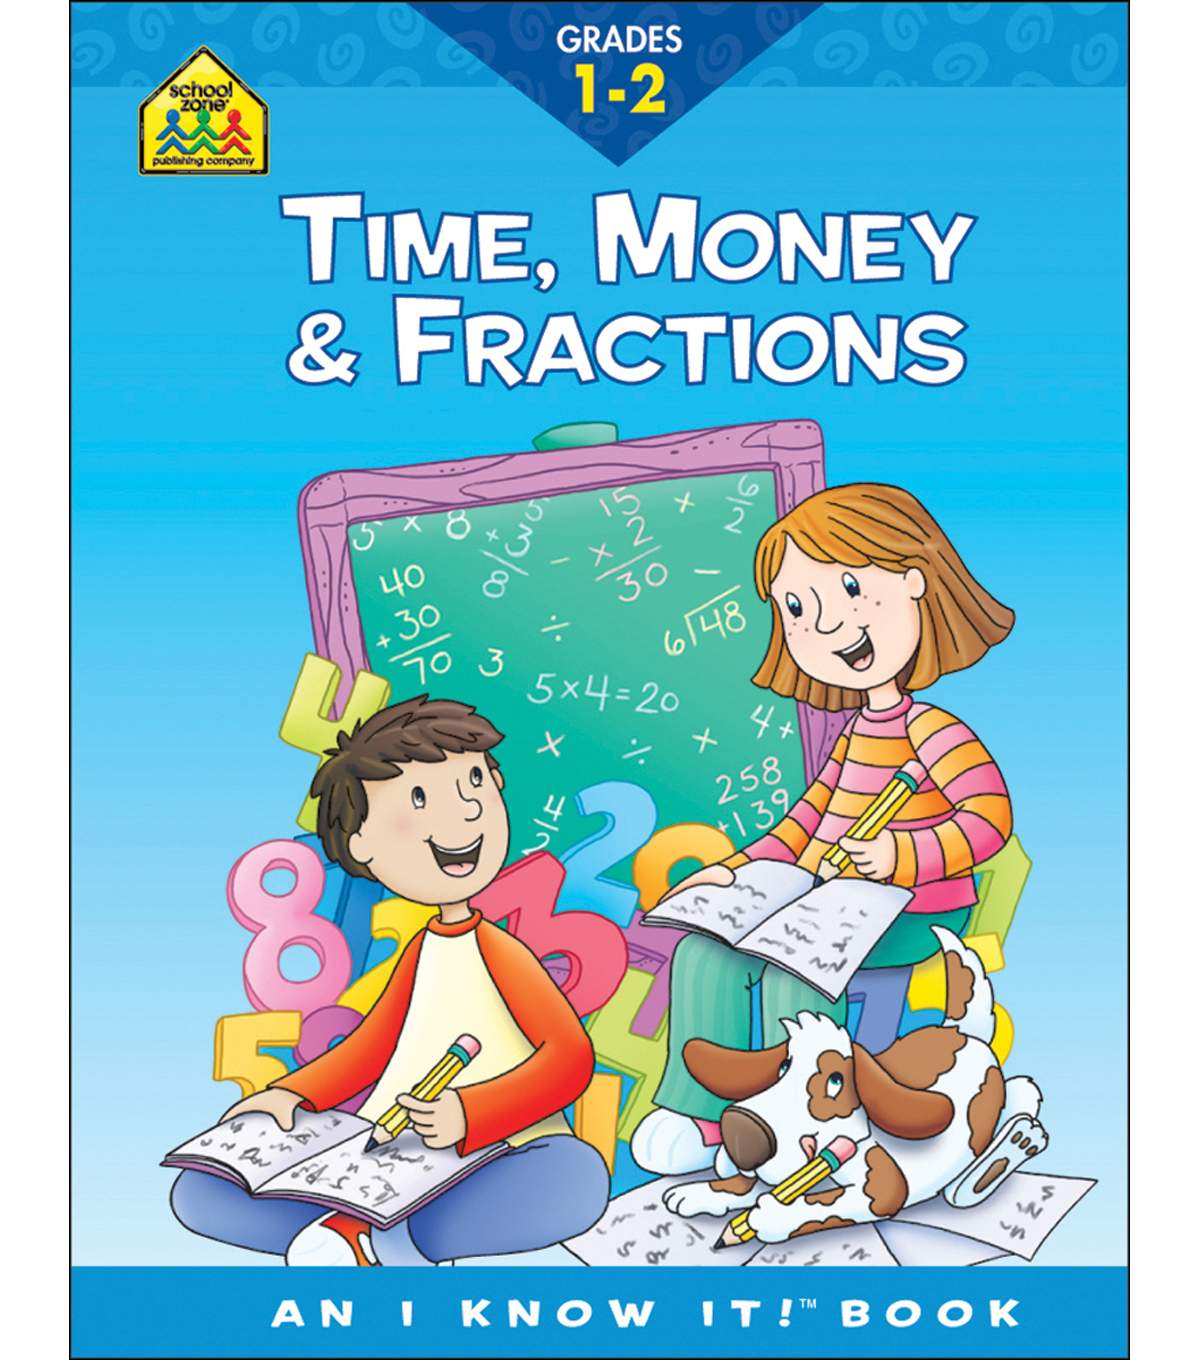 School Zone Curriculum Workbooks-Time, Money, Fractions